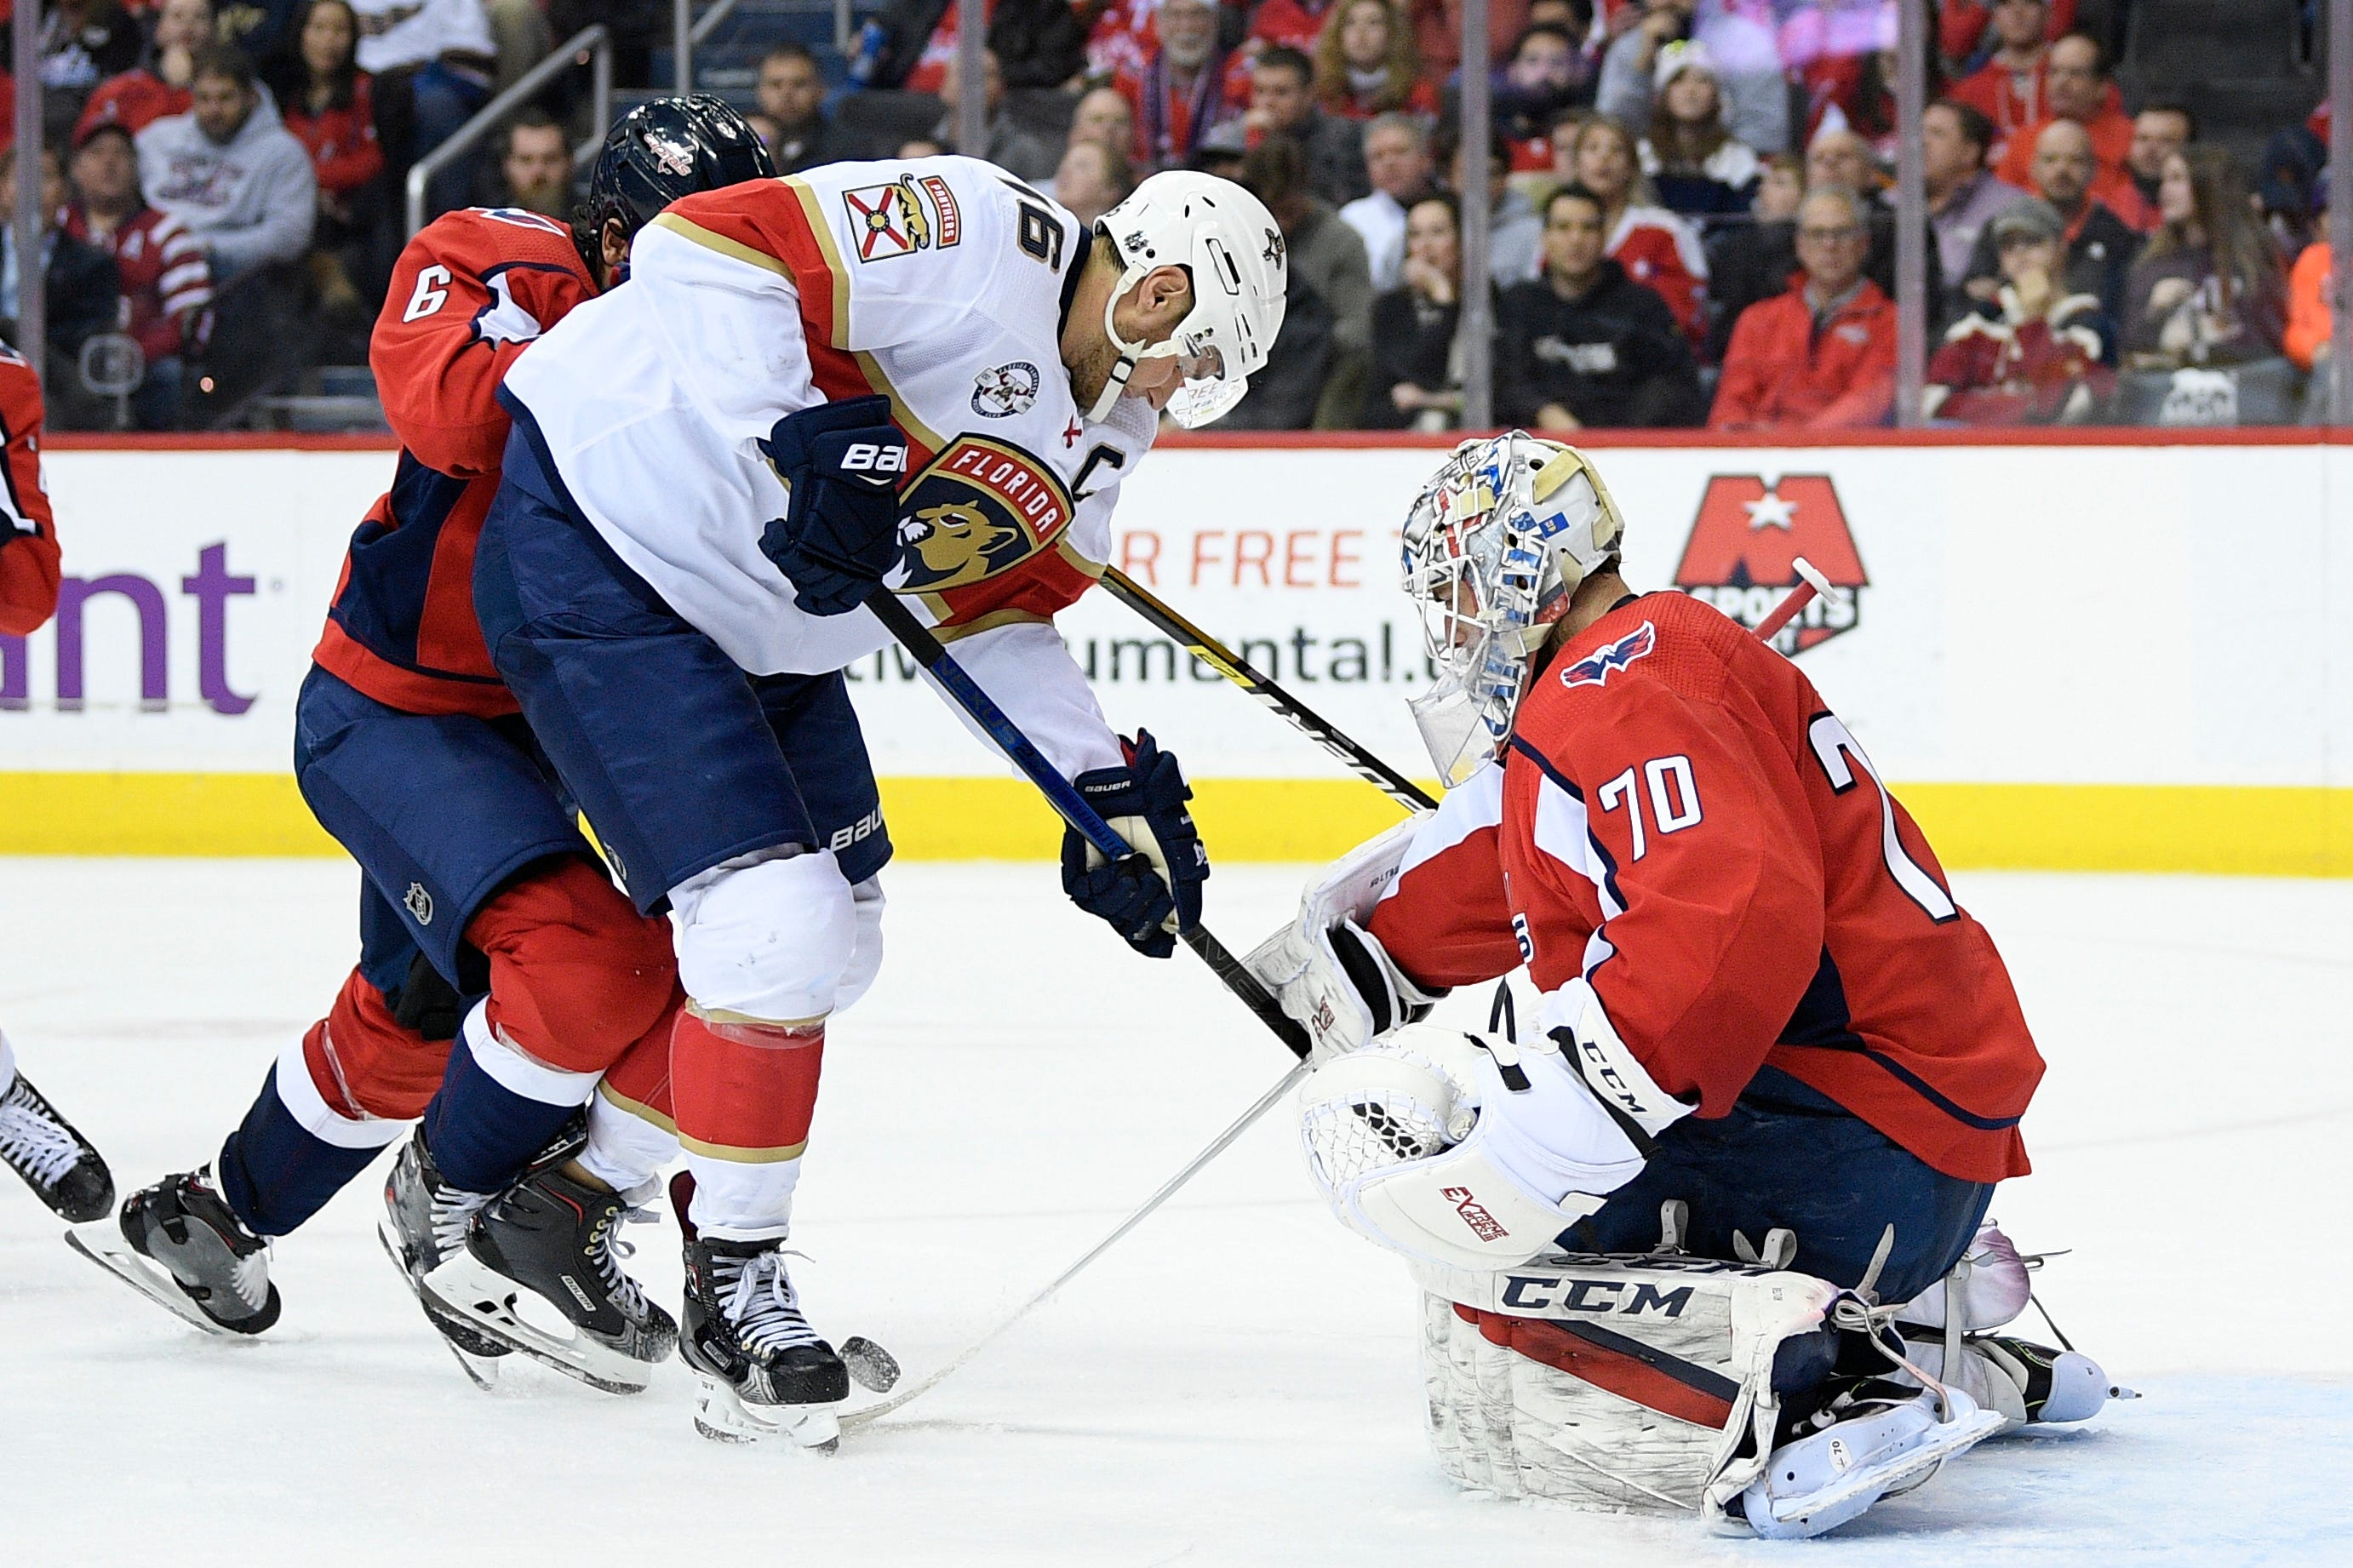 Hoffman scores in OT, Panthers beat Capitals 5-4